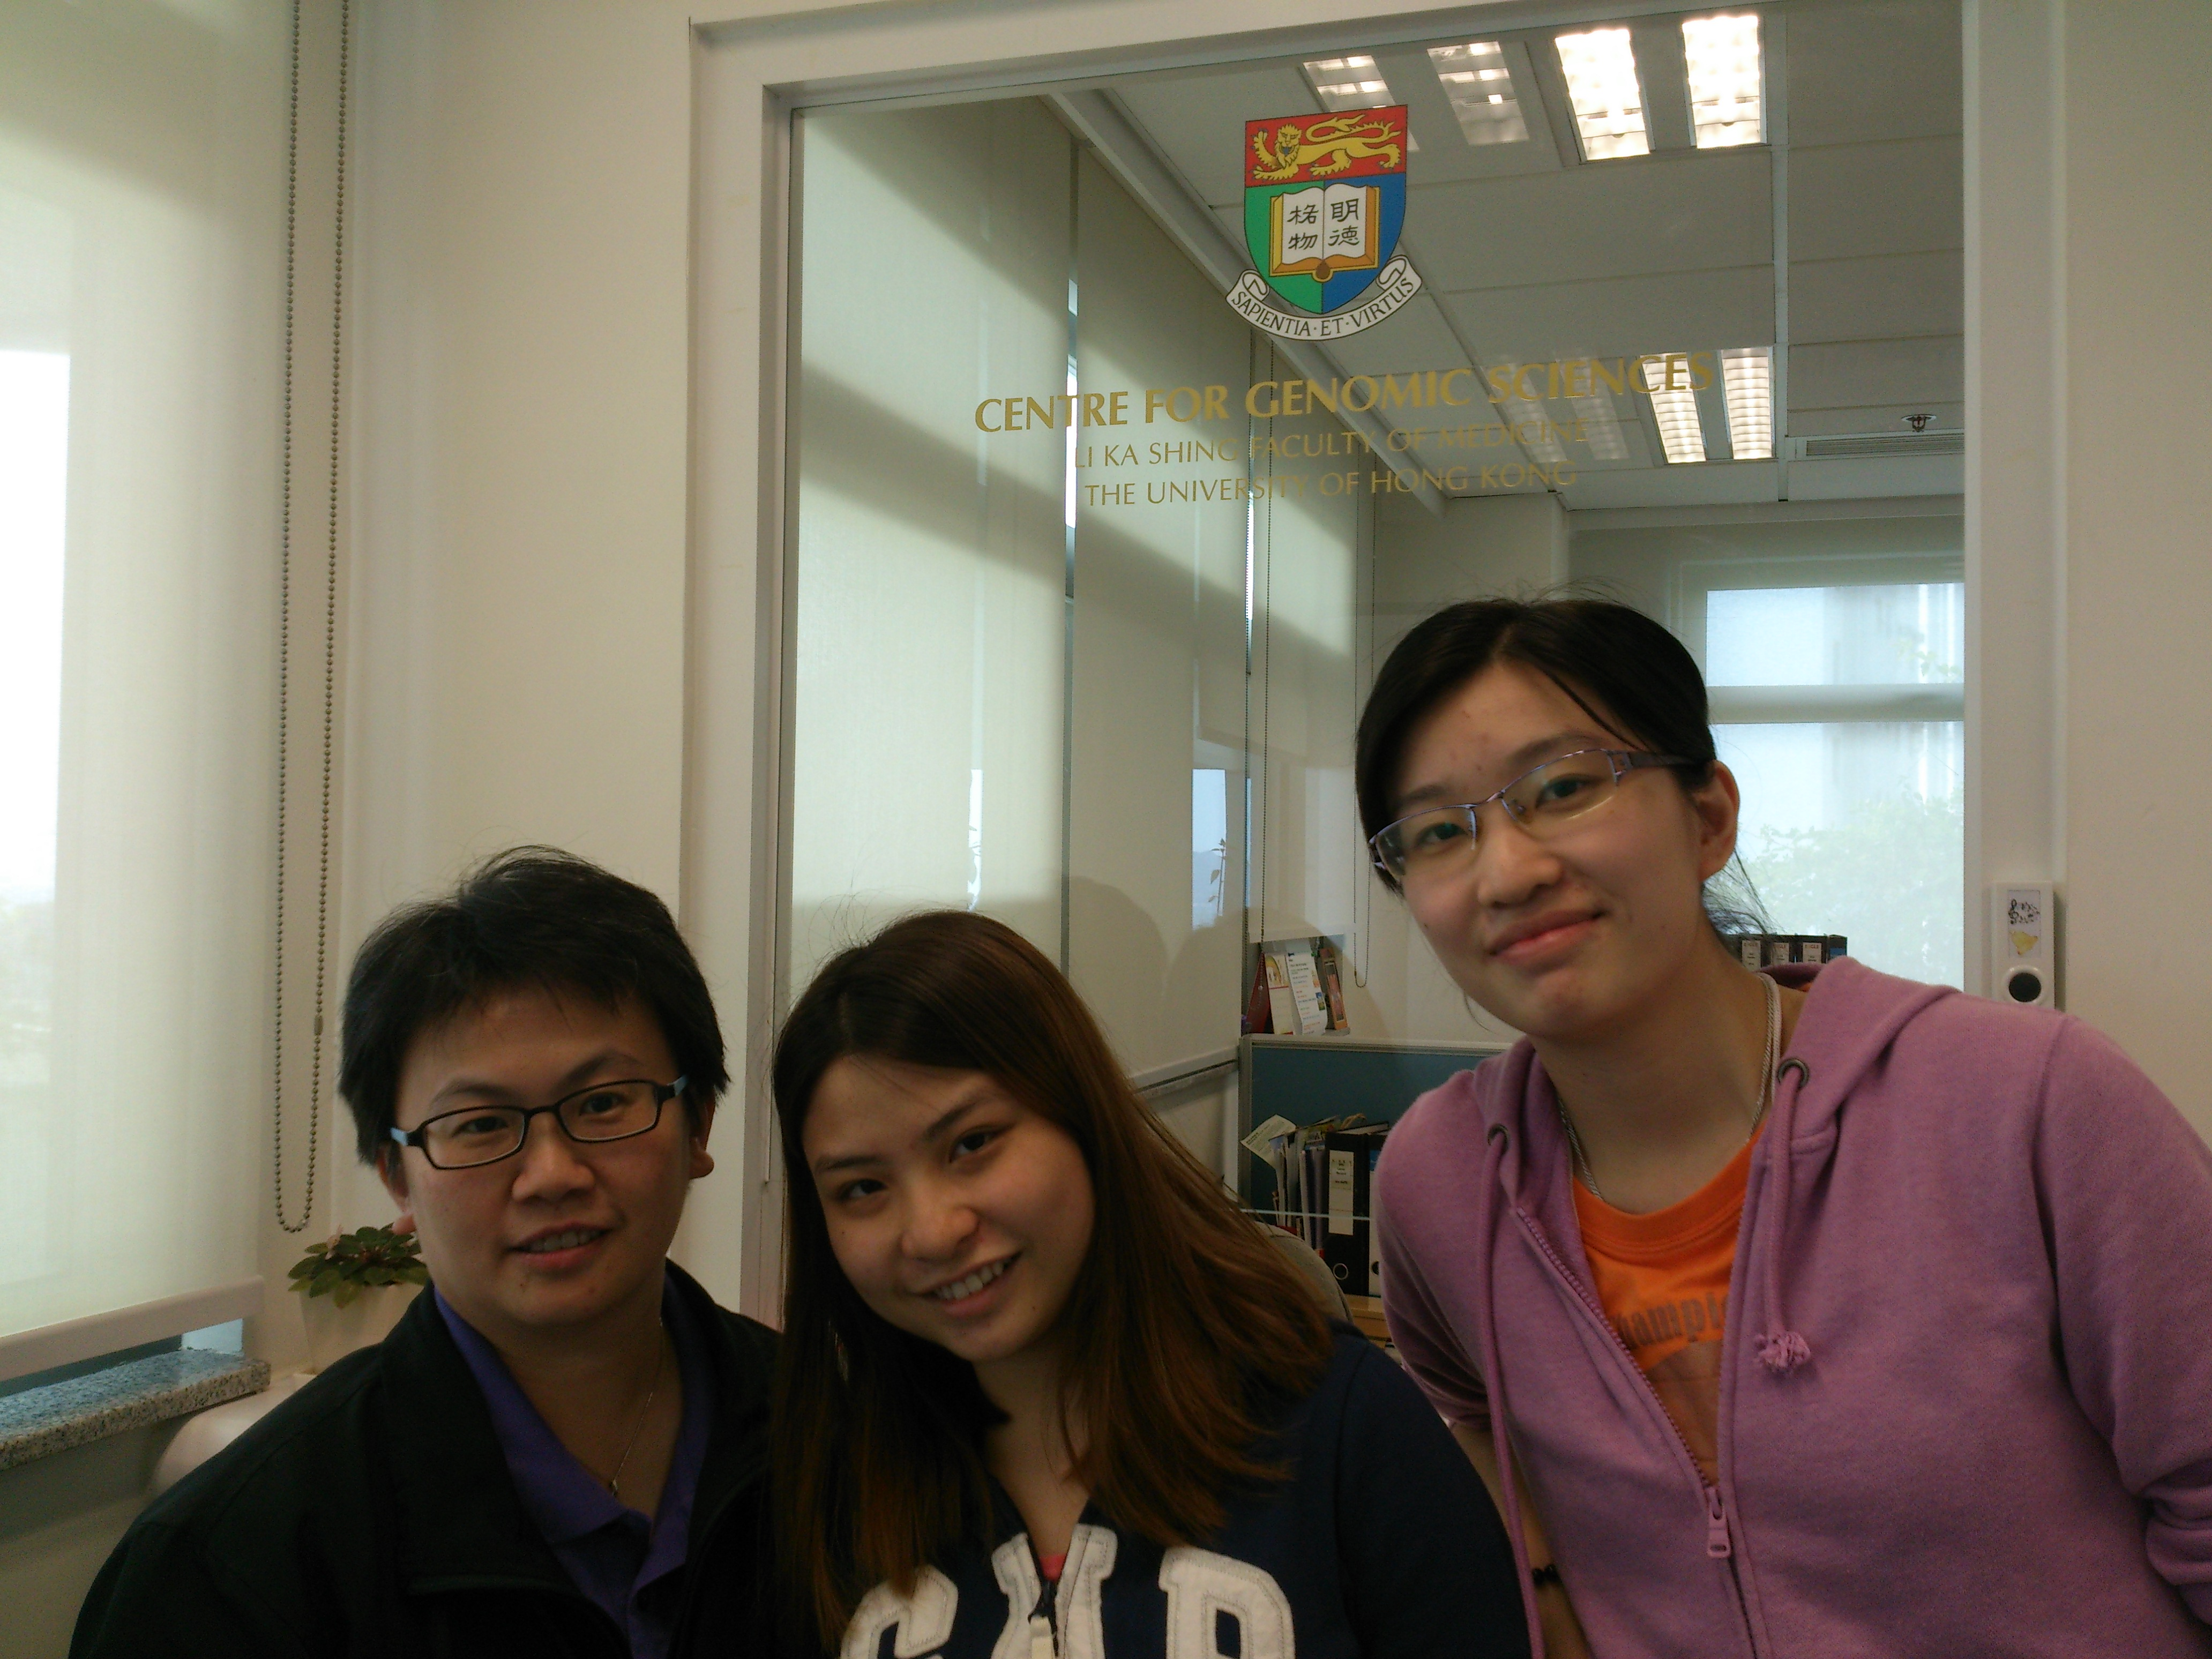 Practical Experiences in the HKU Centre for Genomic Sciences - Photo - 3